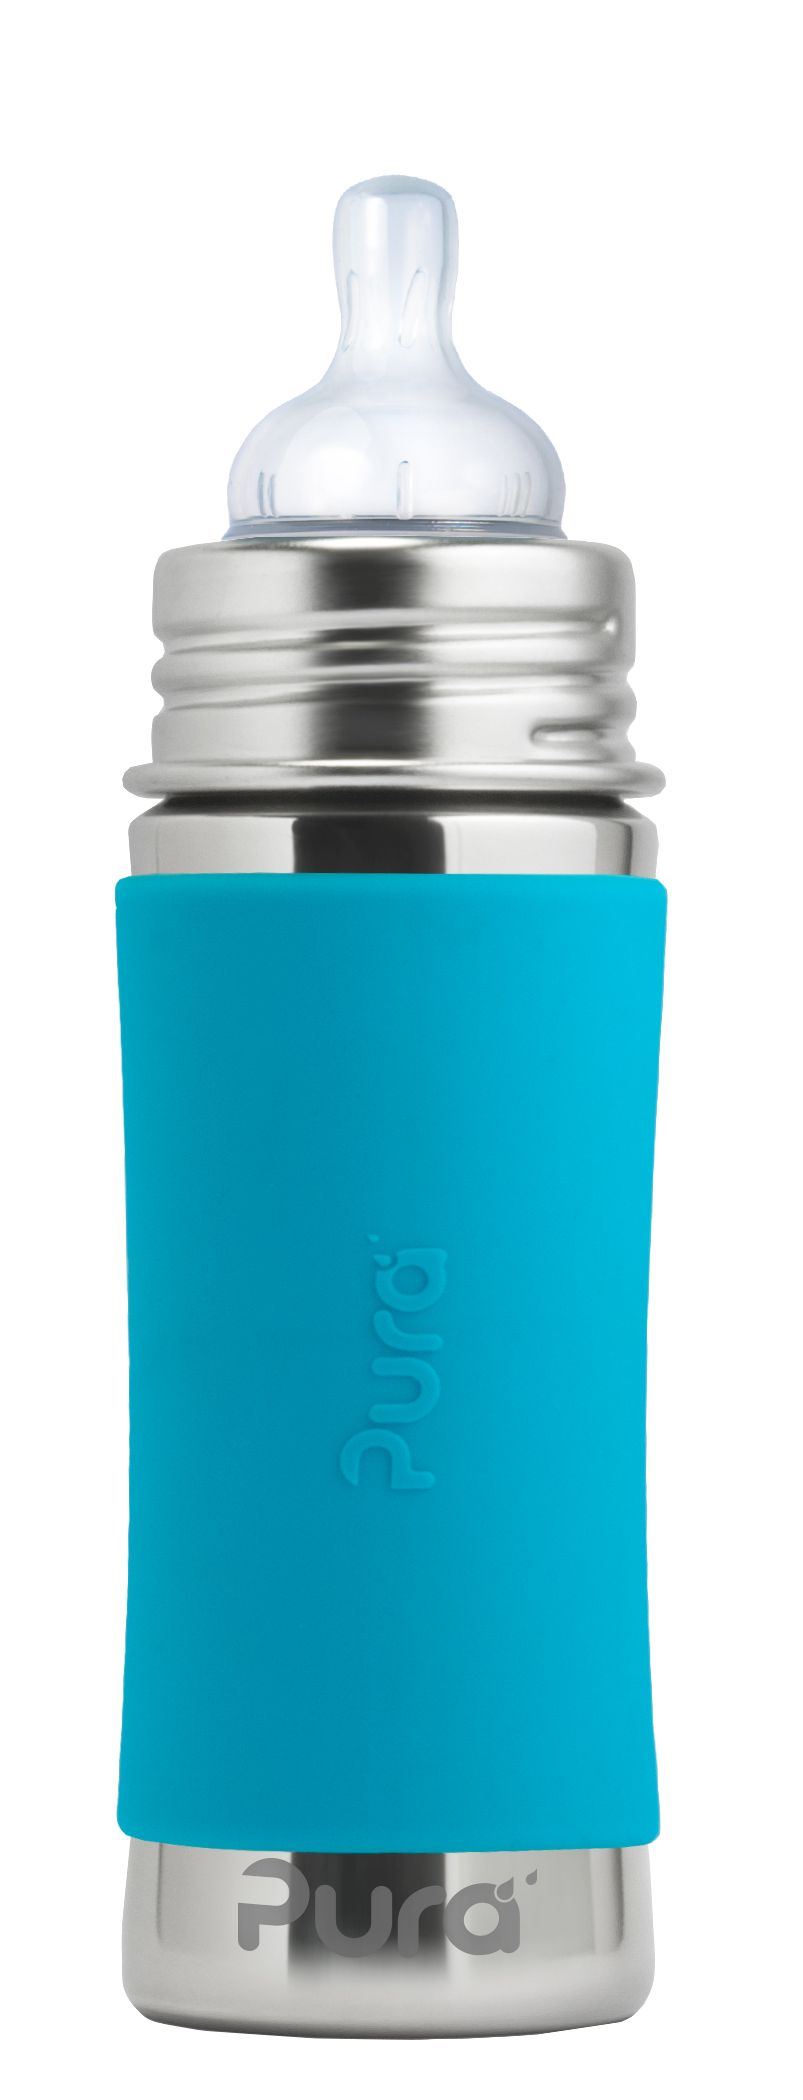 Pura Baby Stainless Steel Infant Bottle